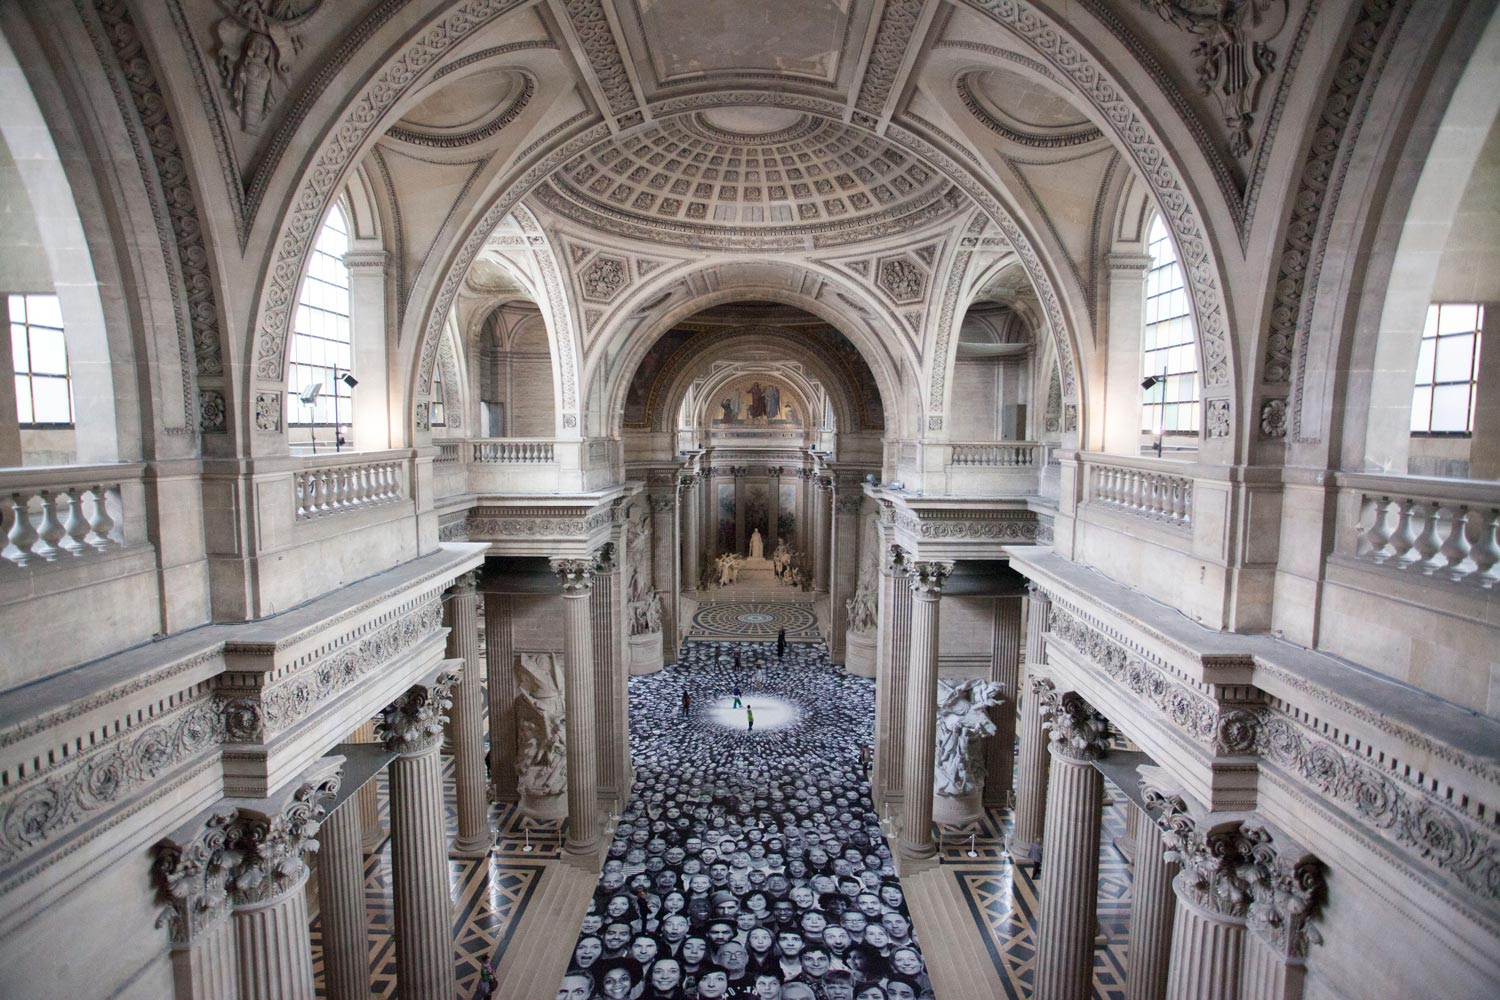 JR installed more than 4,000 self-portraits in the Pantheon in Paris